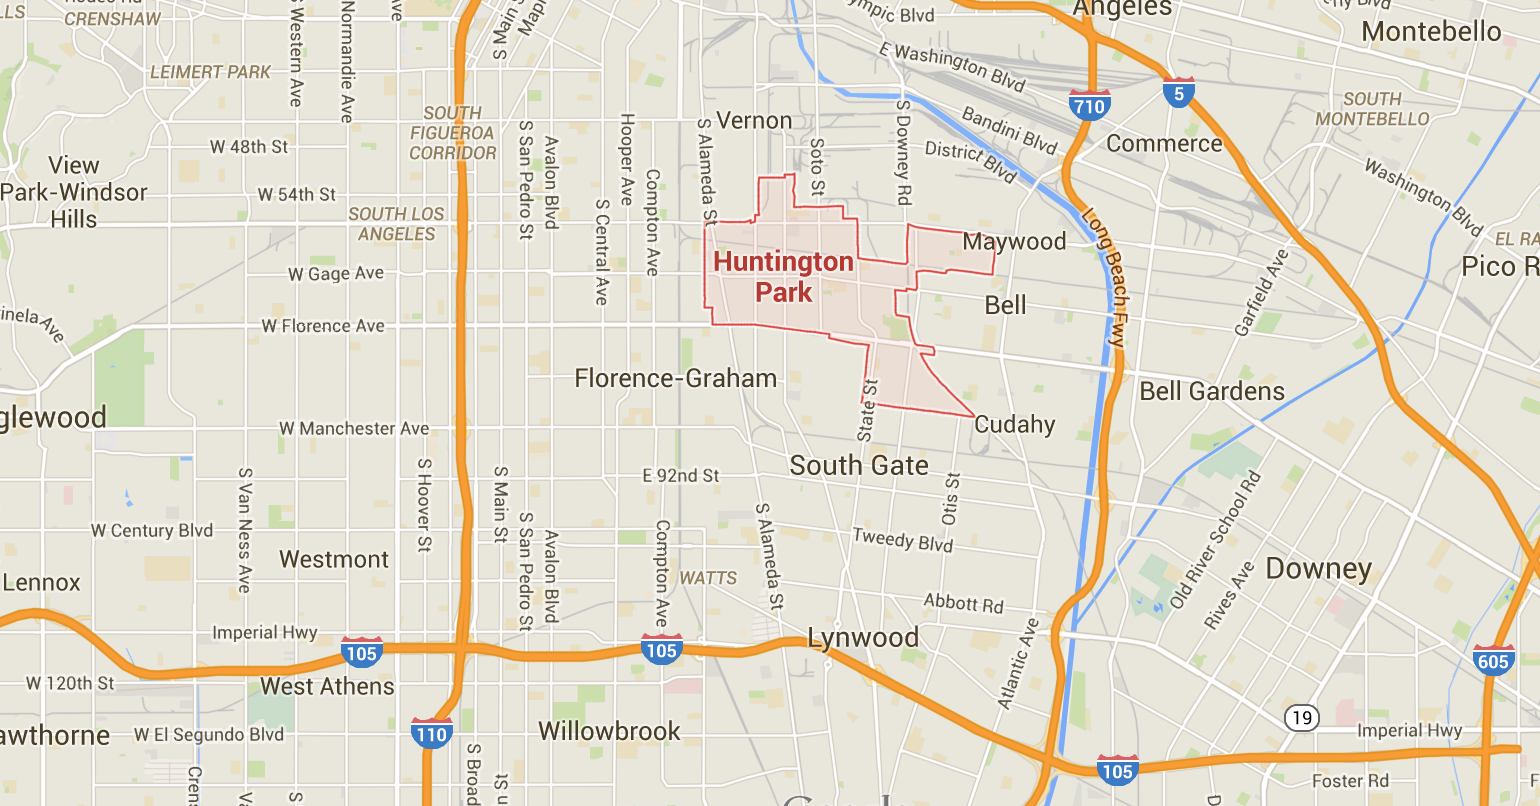 the huntington park website states that in it s population of over 61 000 2 7 of residents are white and 95 are hispanic the average household income is